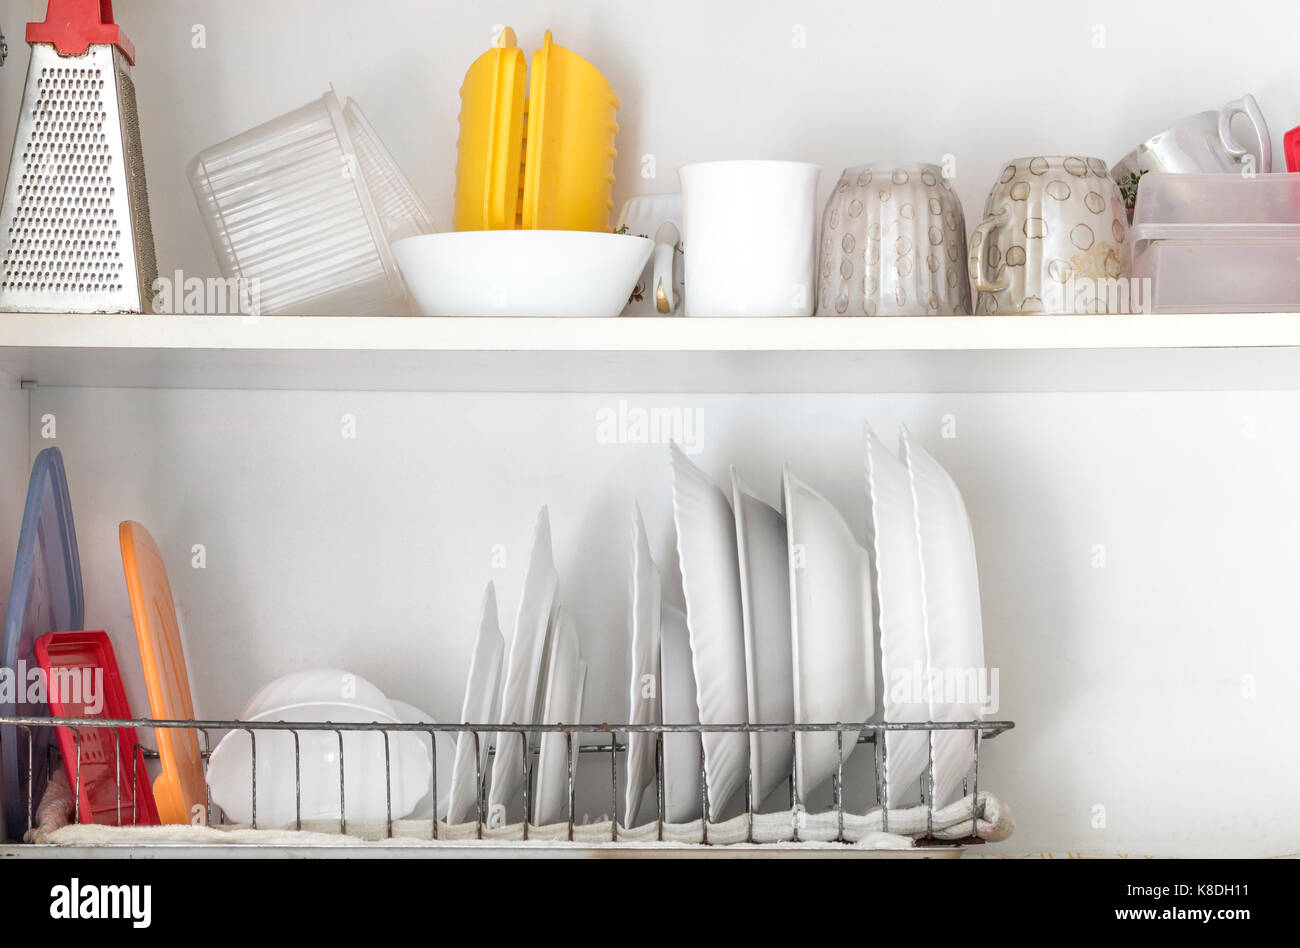 Clean dishes are in the kitchen cupboard Stock Photo: 160109293 - Alamy